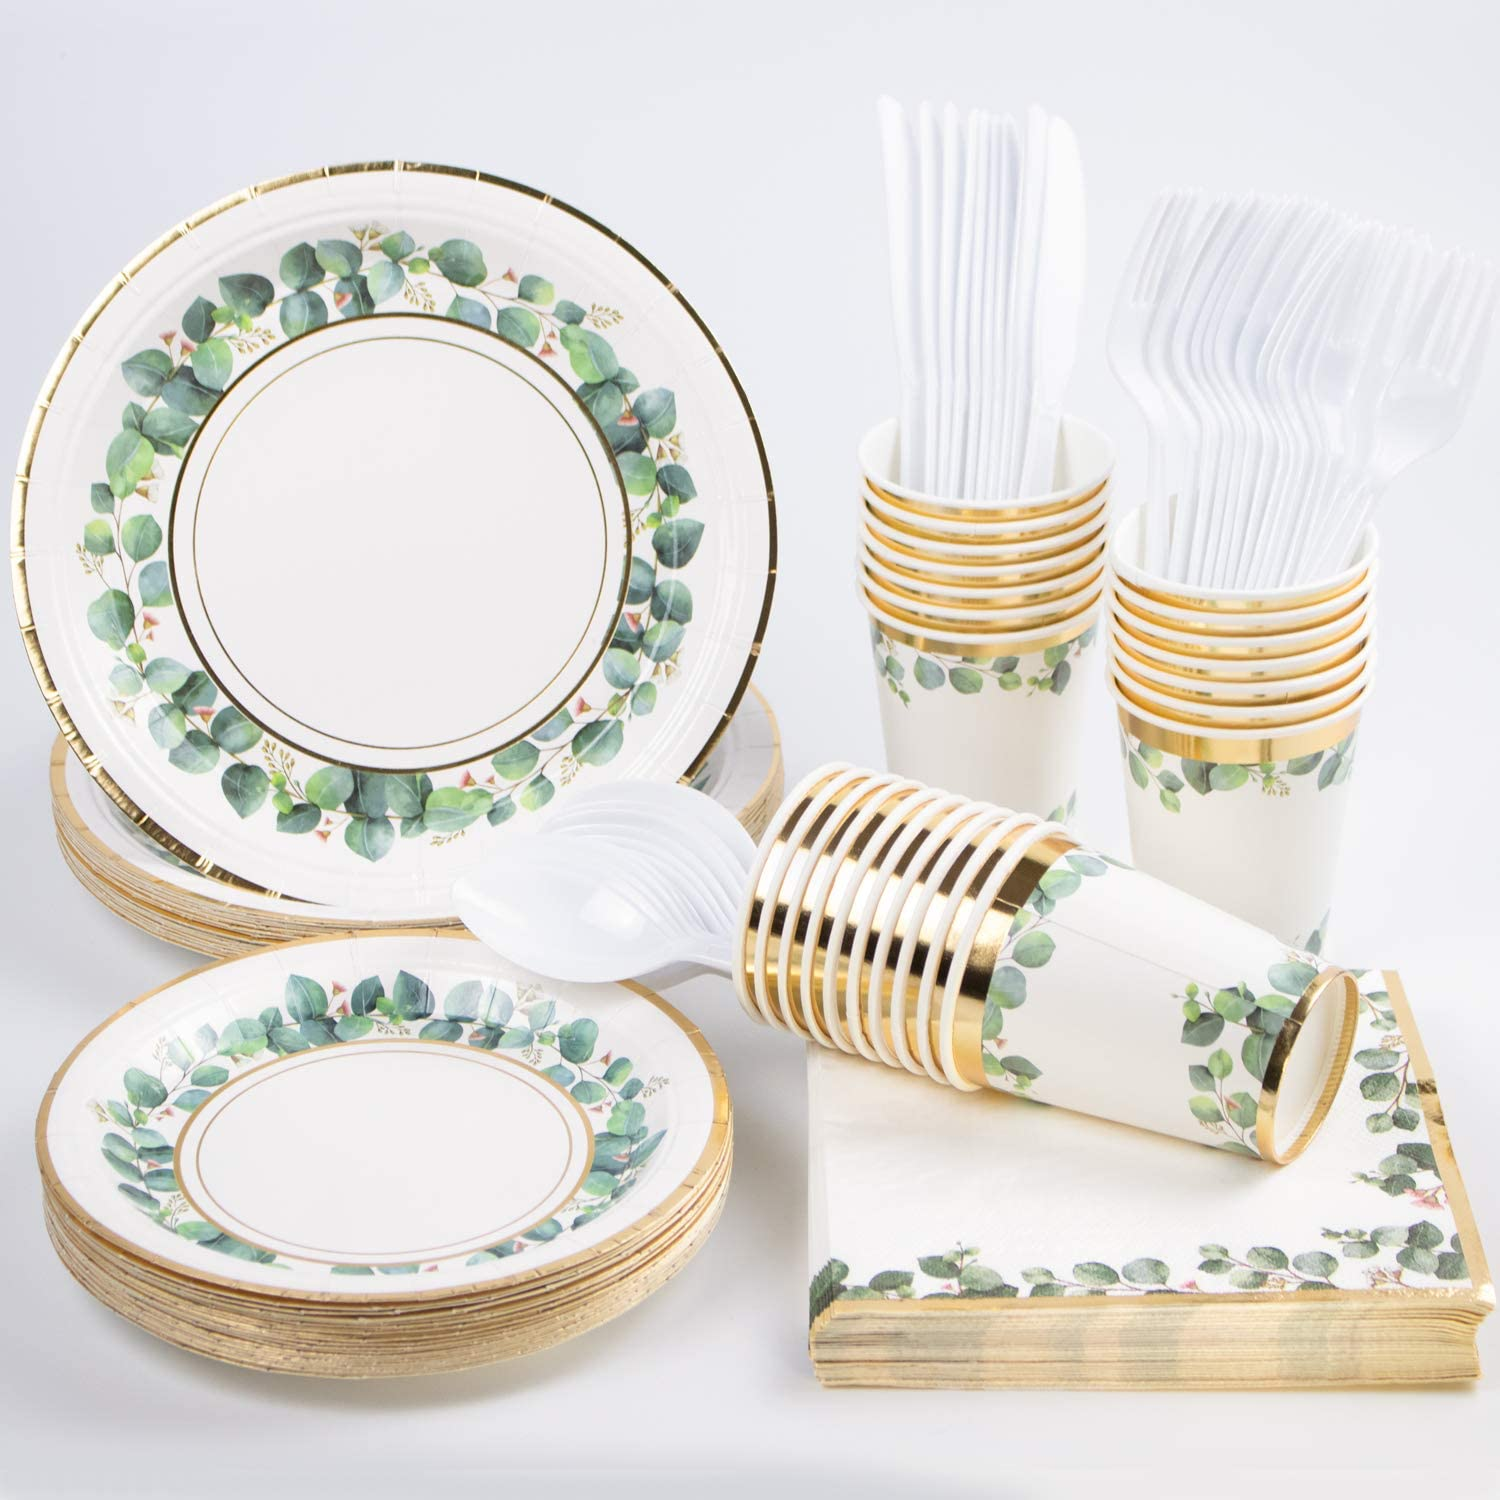 Greenery Jungle Party Supplies, (168PCS Serves 24) Gold Foil Disposable Paper Plates, Napkins, Cups, Knives, Spoons, Forks, Decorations for Wedding Baby Shower Birthday Bridal Shower